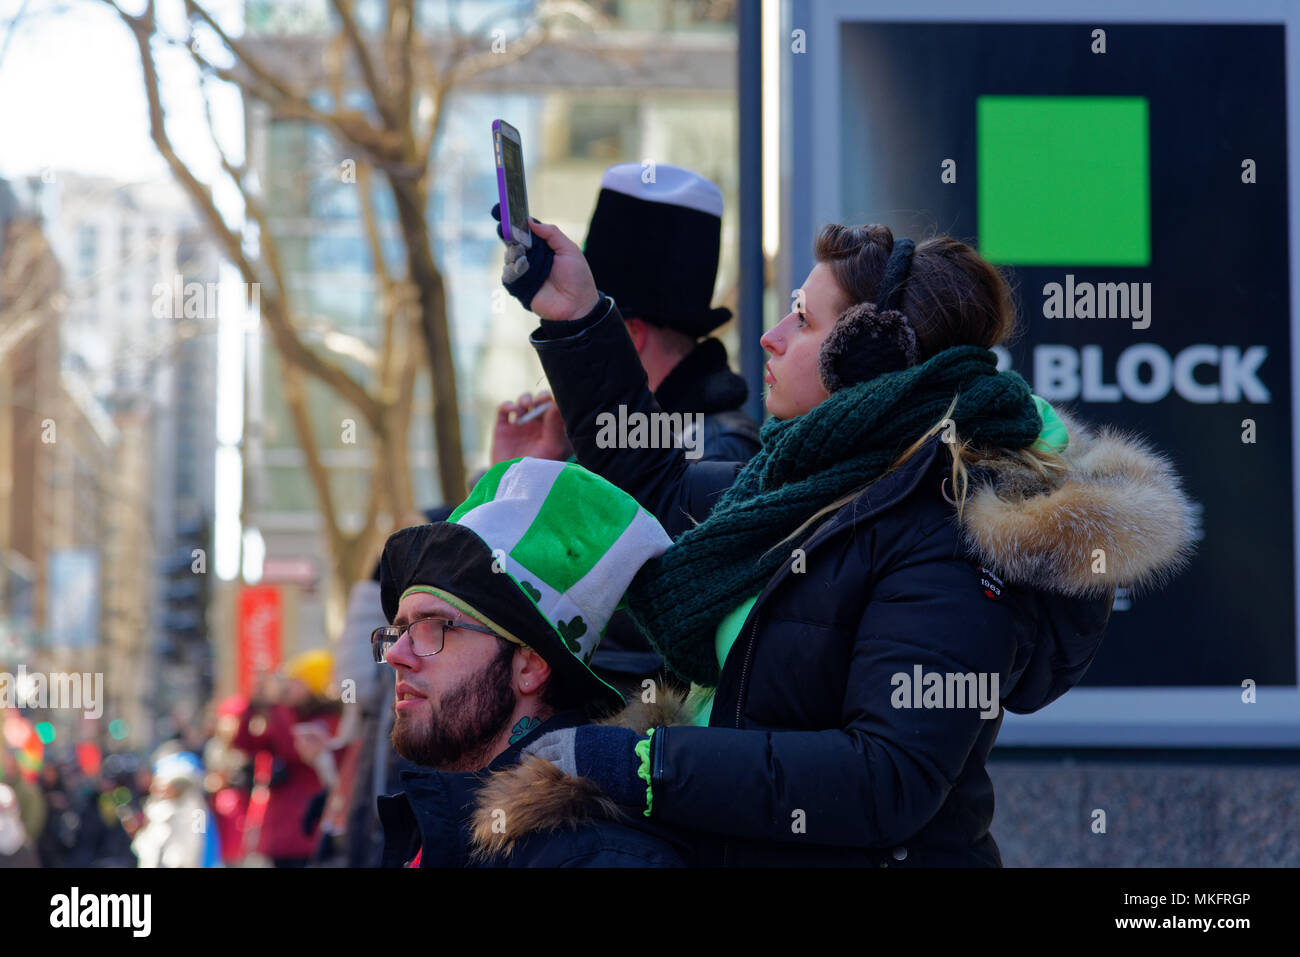 A young woman filming the Montreal St Patrick's Day parade - Stock Image